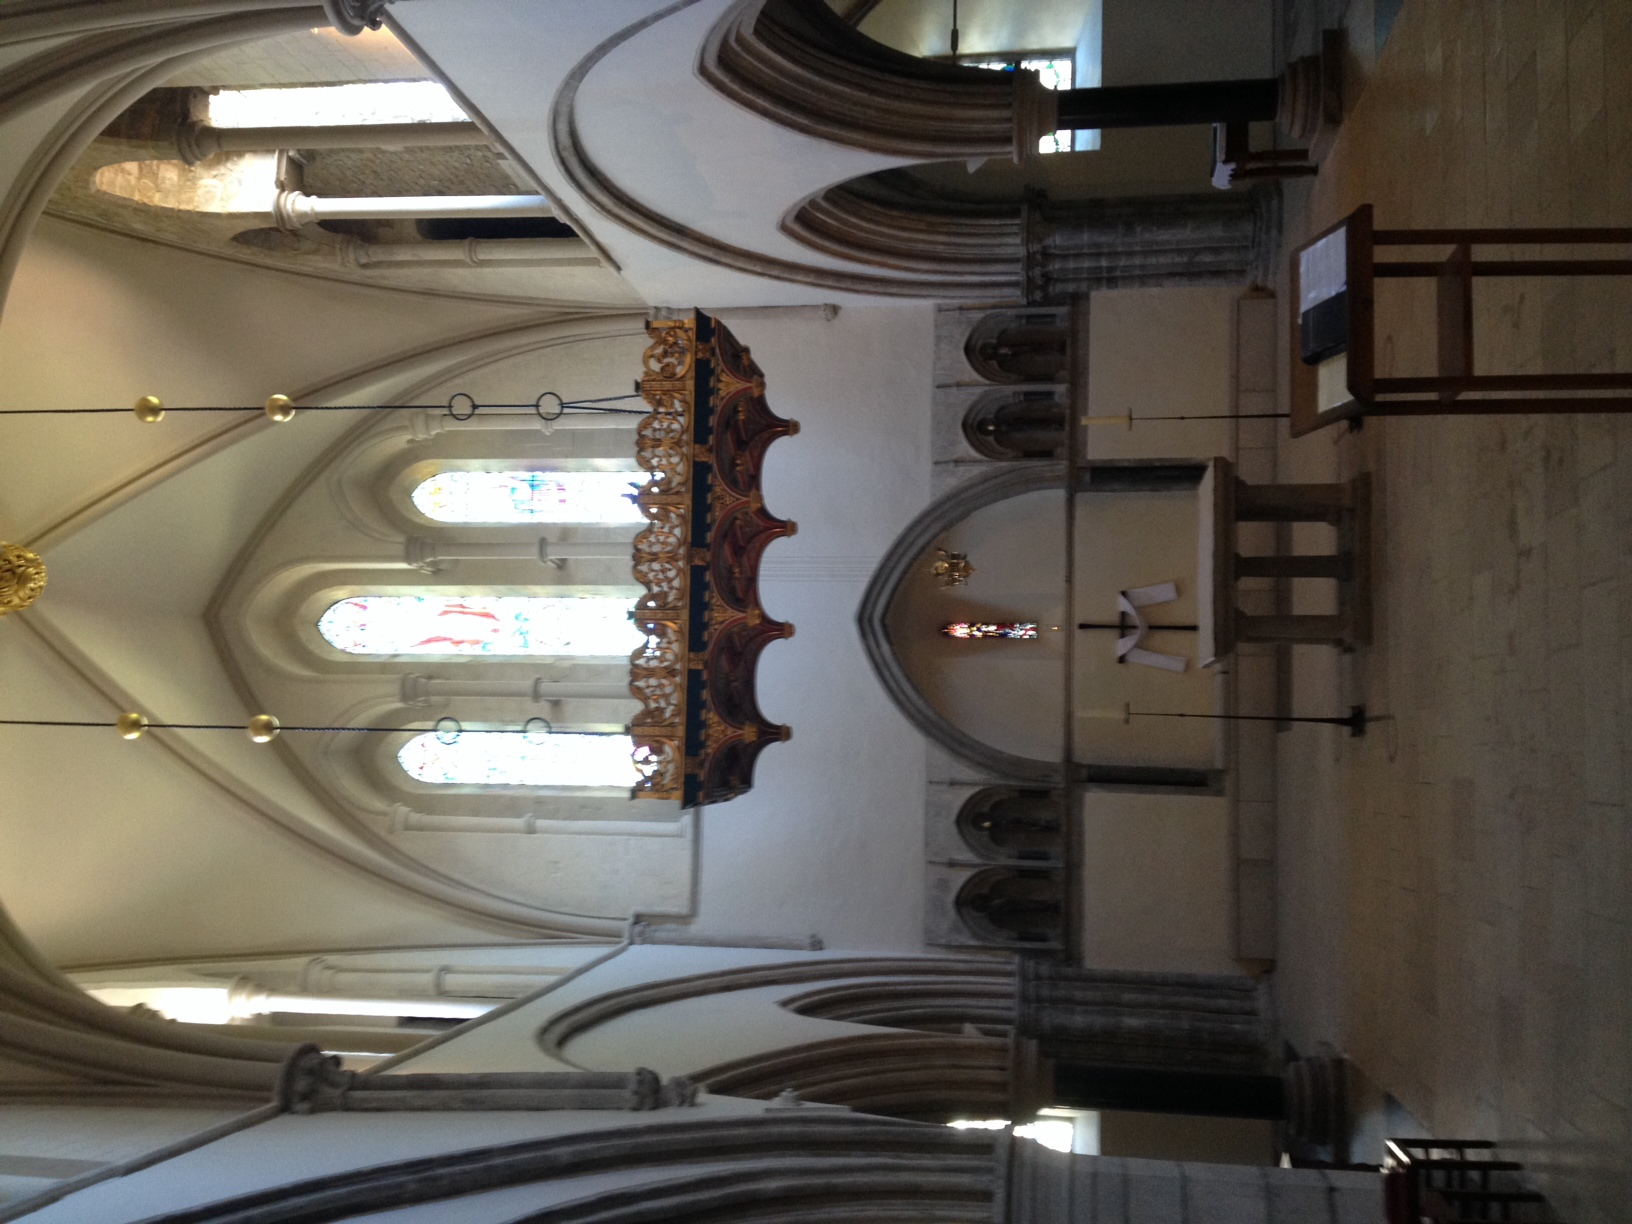 A section of the Portsmouth Cathedral constructed in the 12th century. A testament to long obedience and faithfulness.